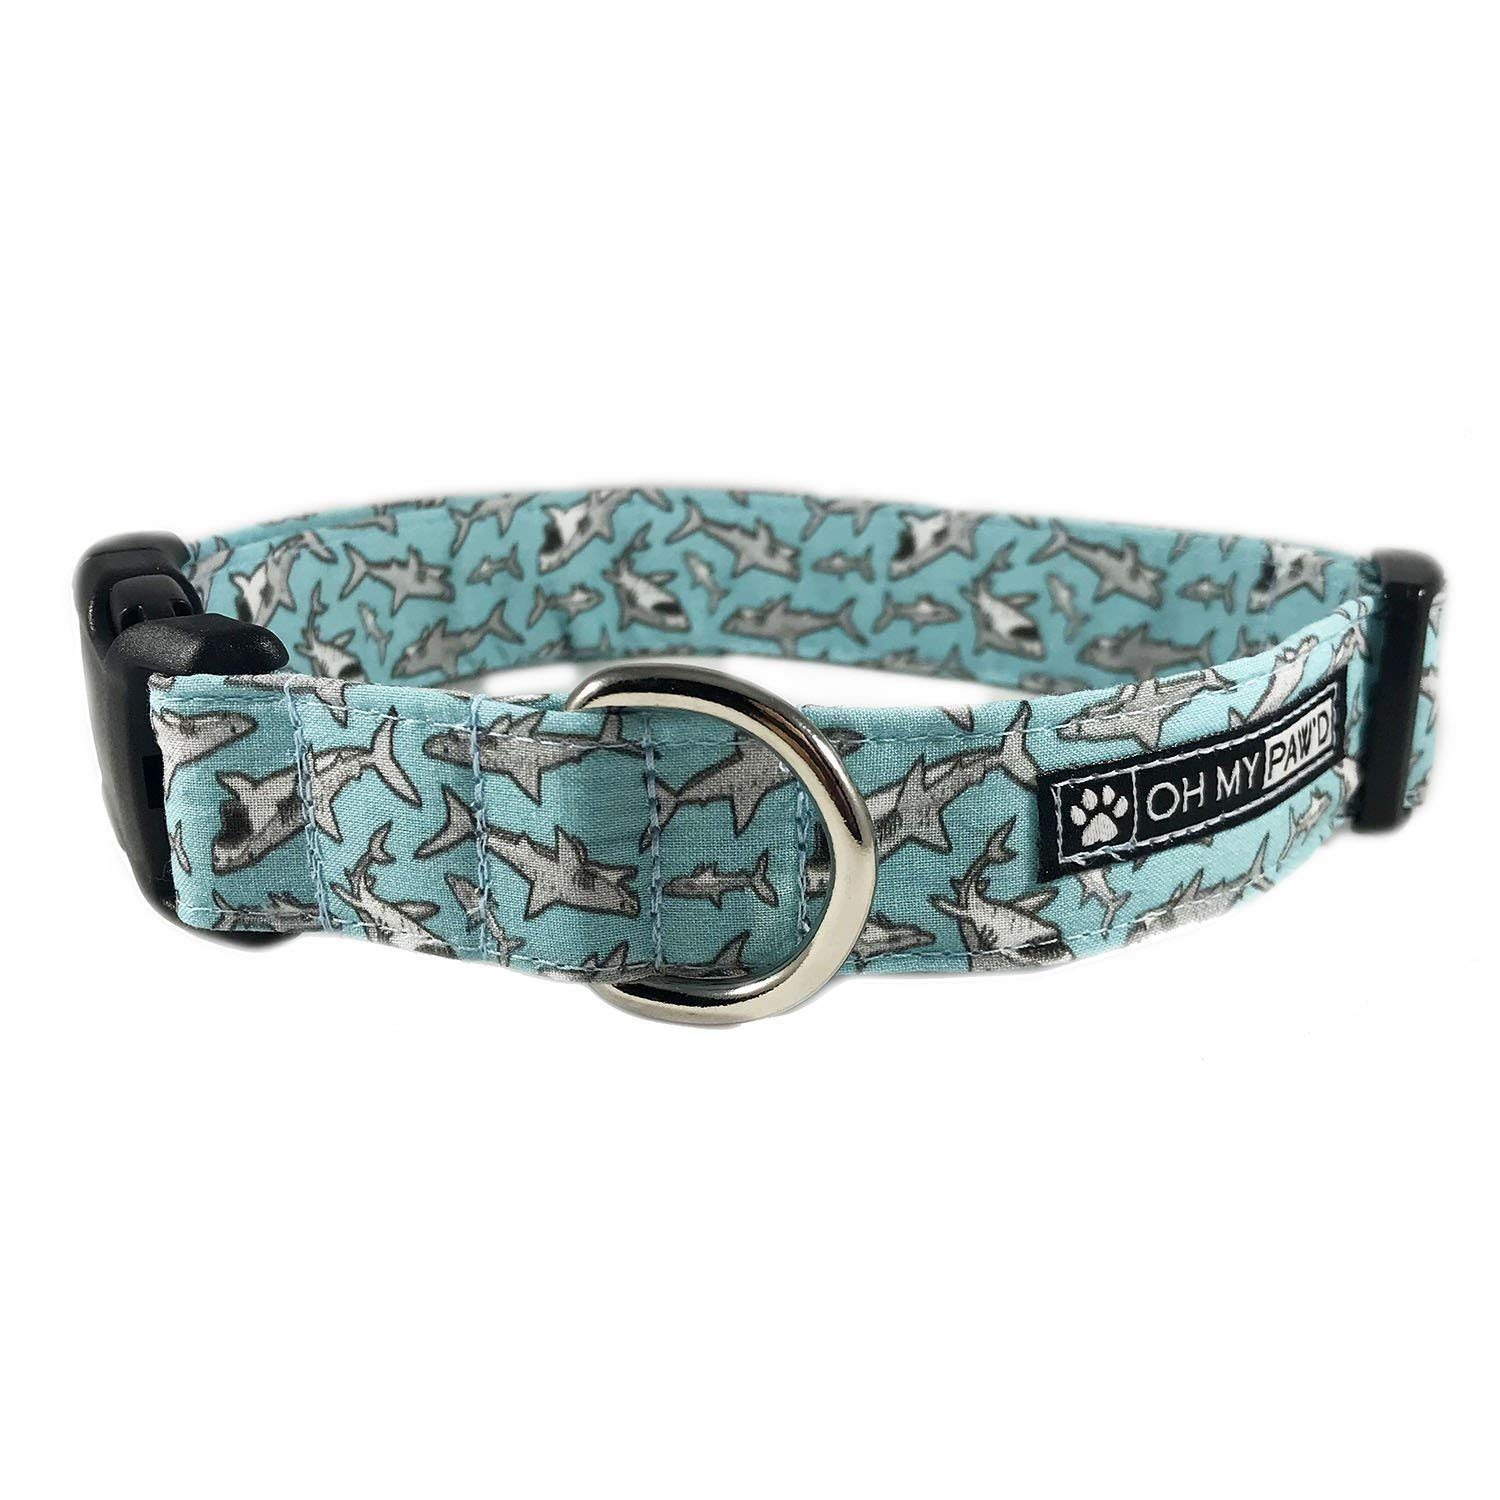 Shark Dog or Cat Collar for Pets Size Medium 3/4 Wide and 12-19 Long by Oh My Paw'd